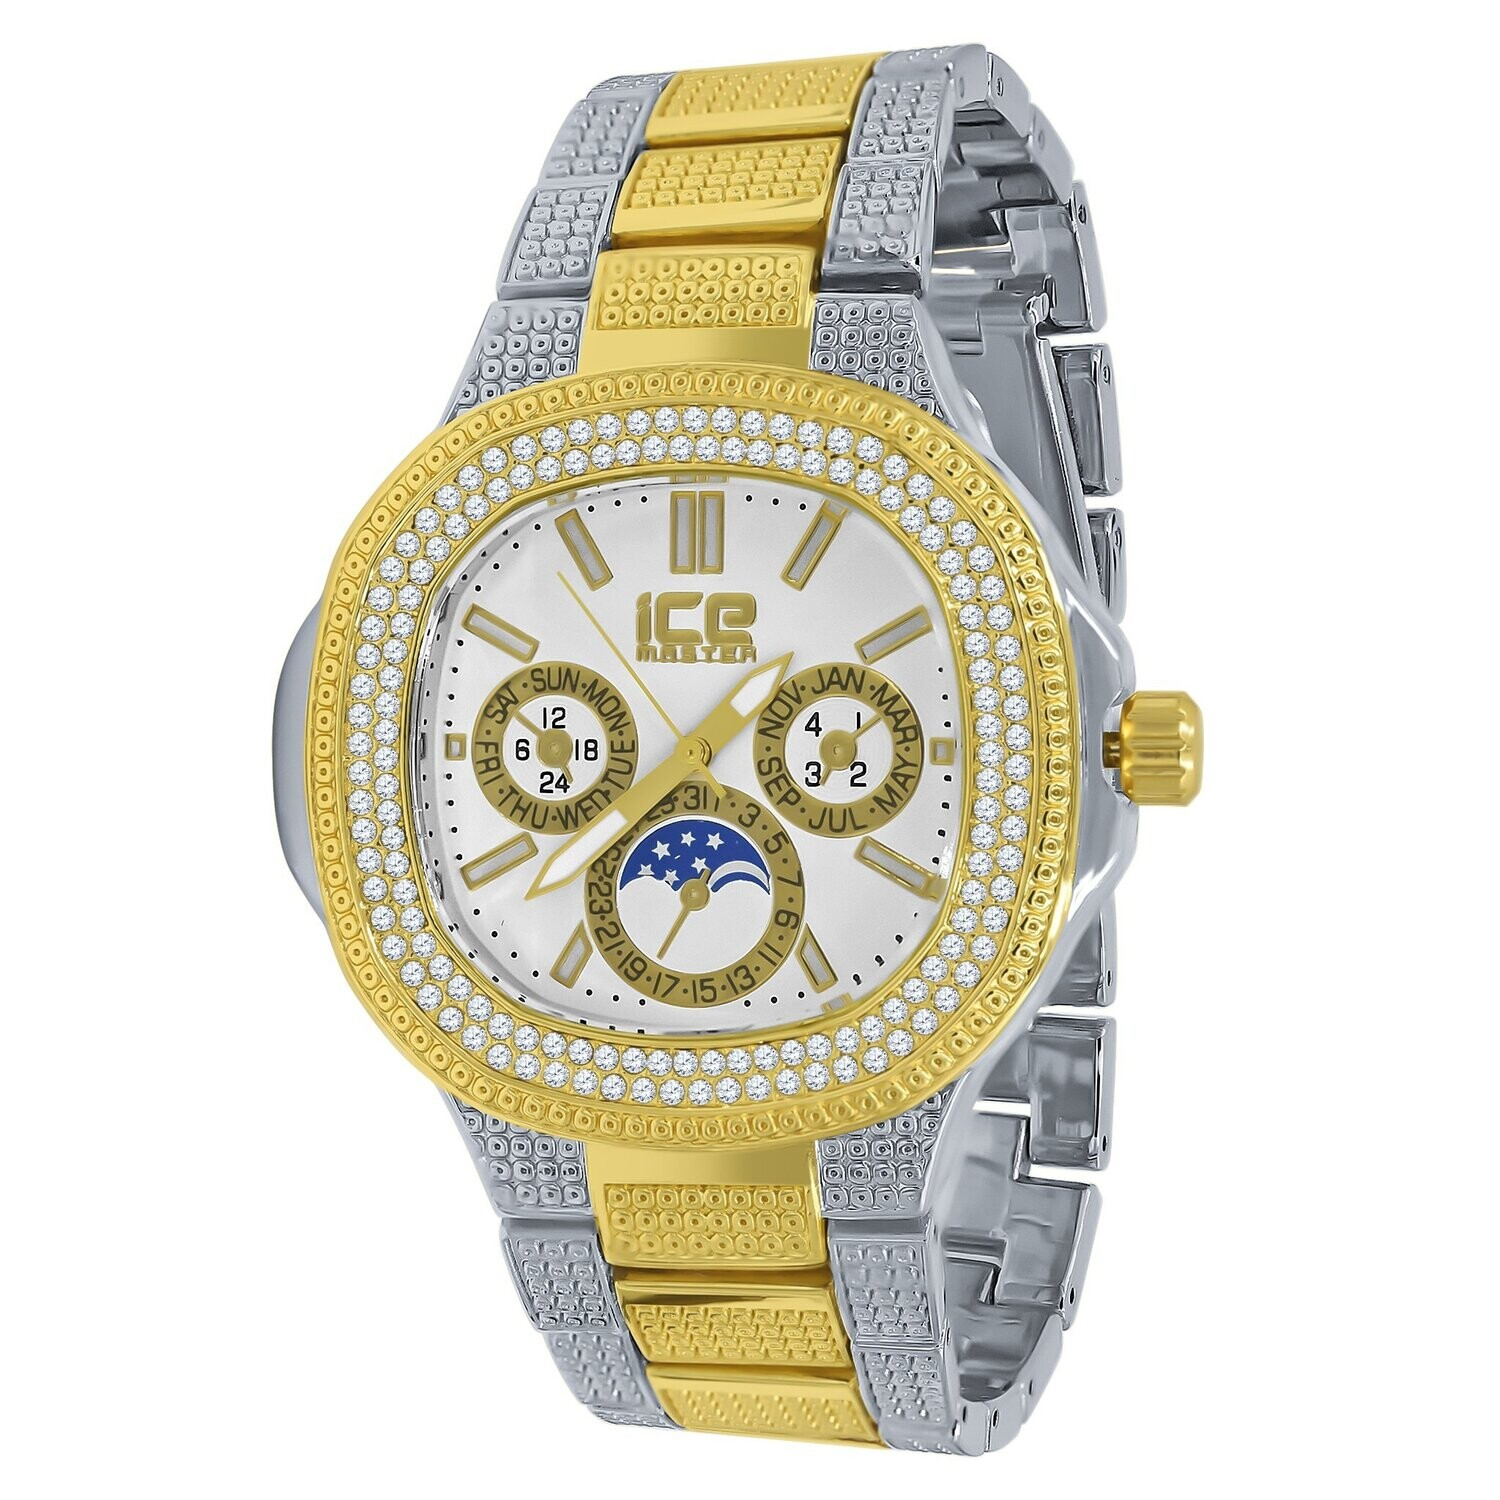 ENTHRAL Watch for Men | 5625359